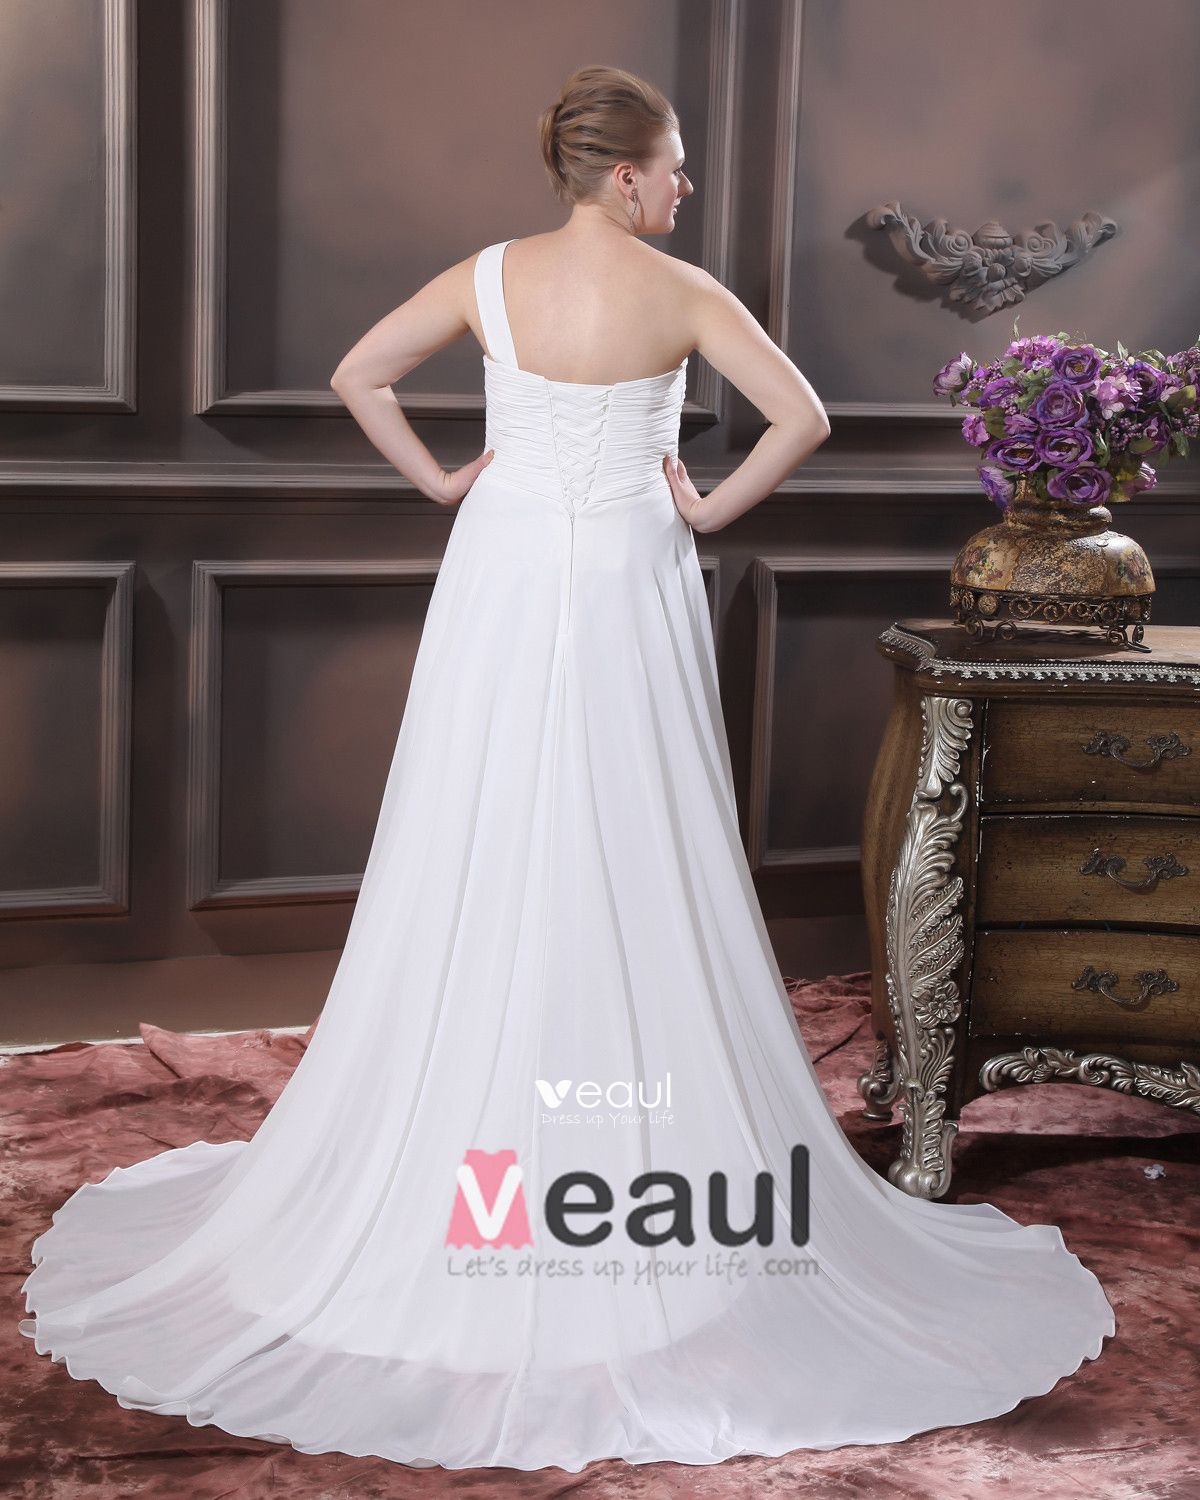 Chiffon Beads One Shoulder Floor Length Plus Size Bridal Gown Wedding Dress